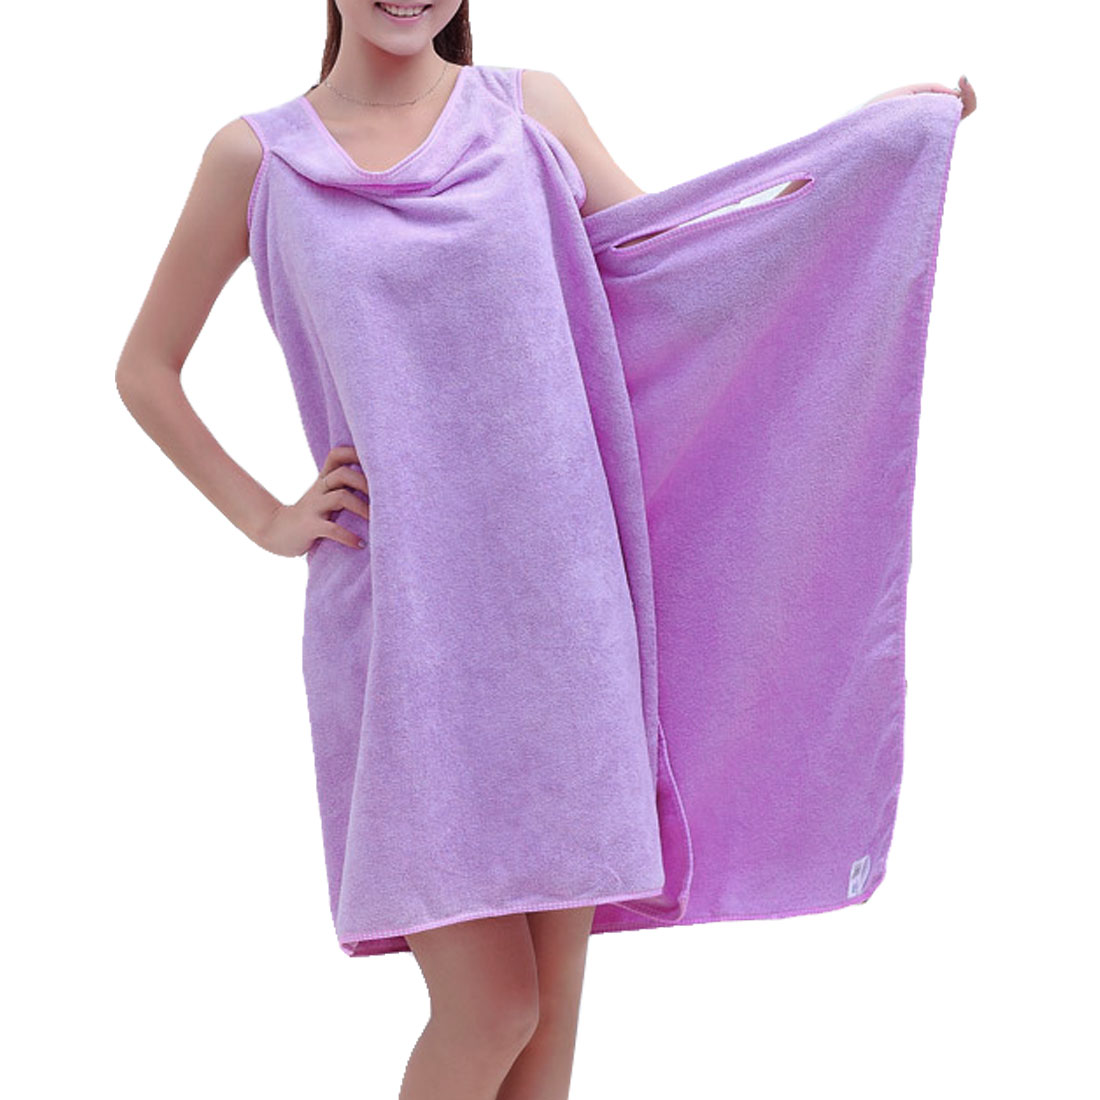 Lady Sleeveless Absorbent Towel Bathrobe Bath Wrap Dressing Gown Purple